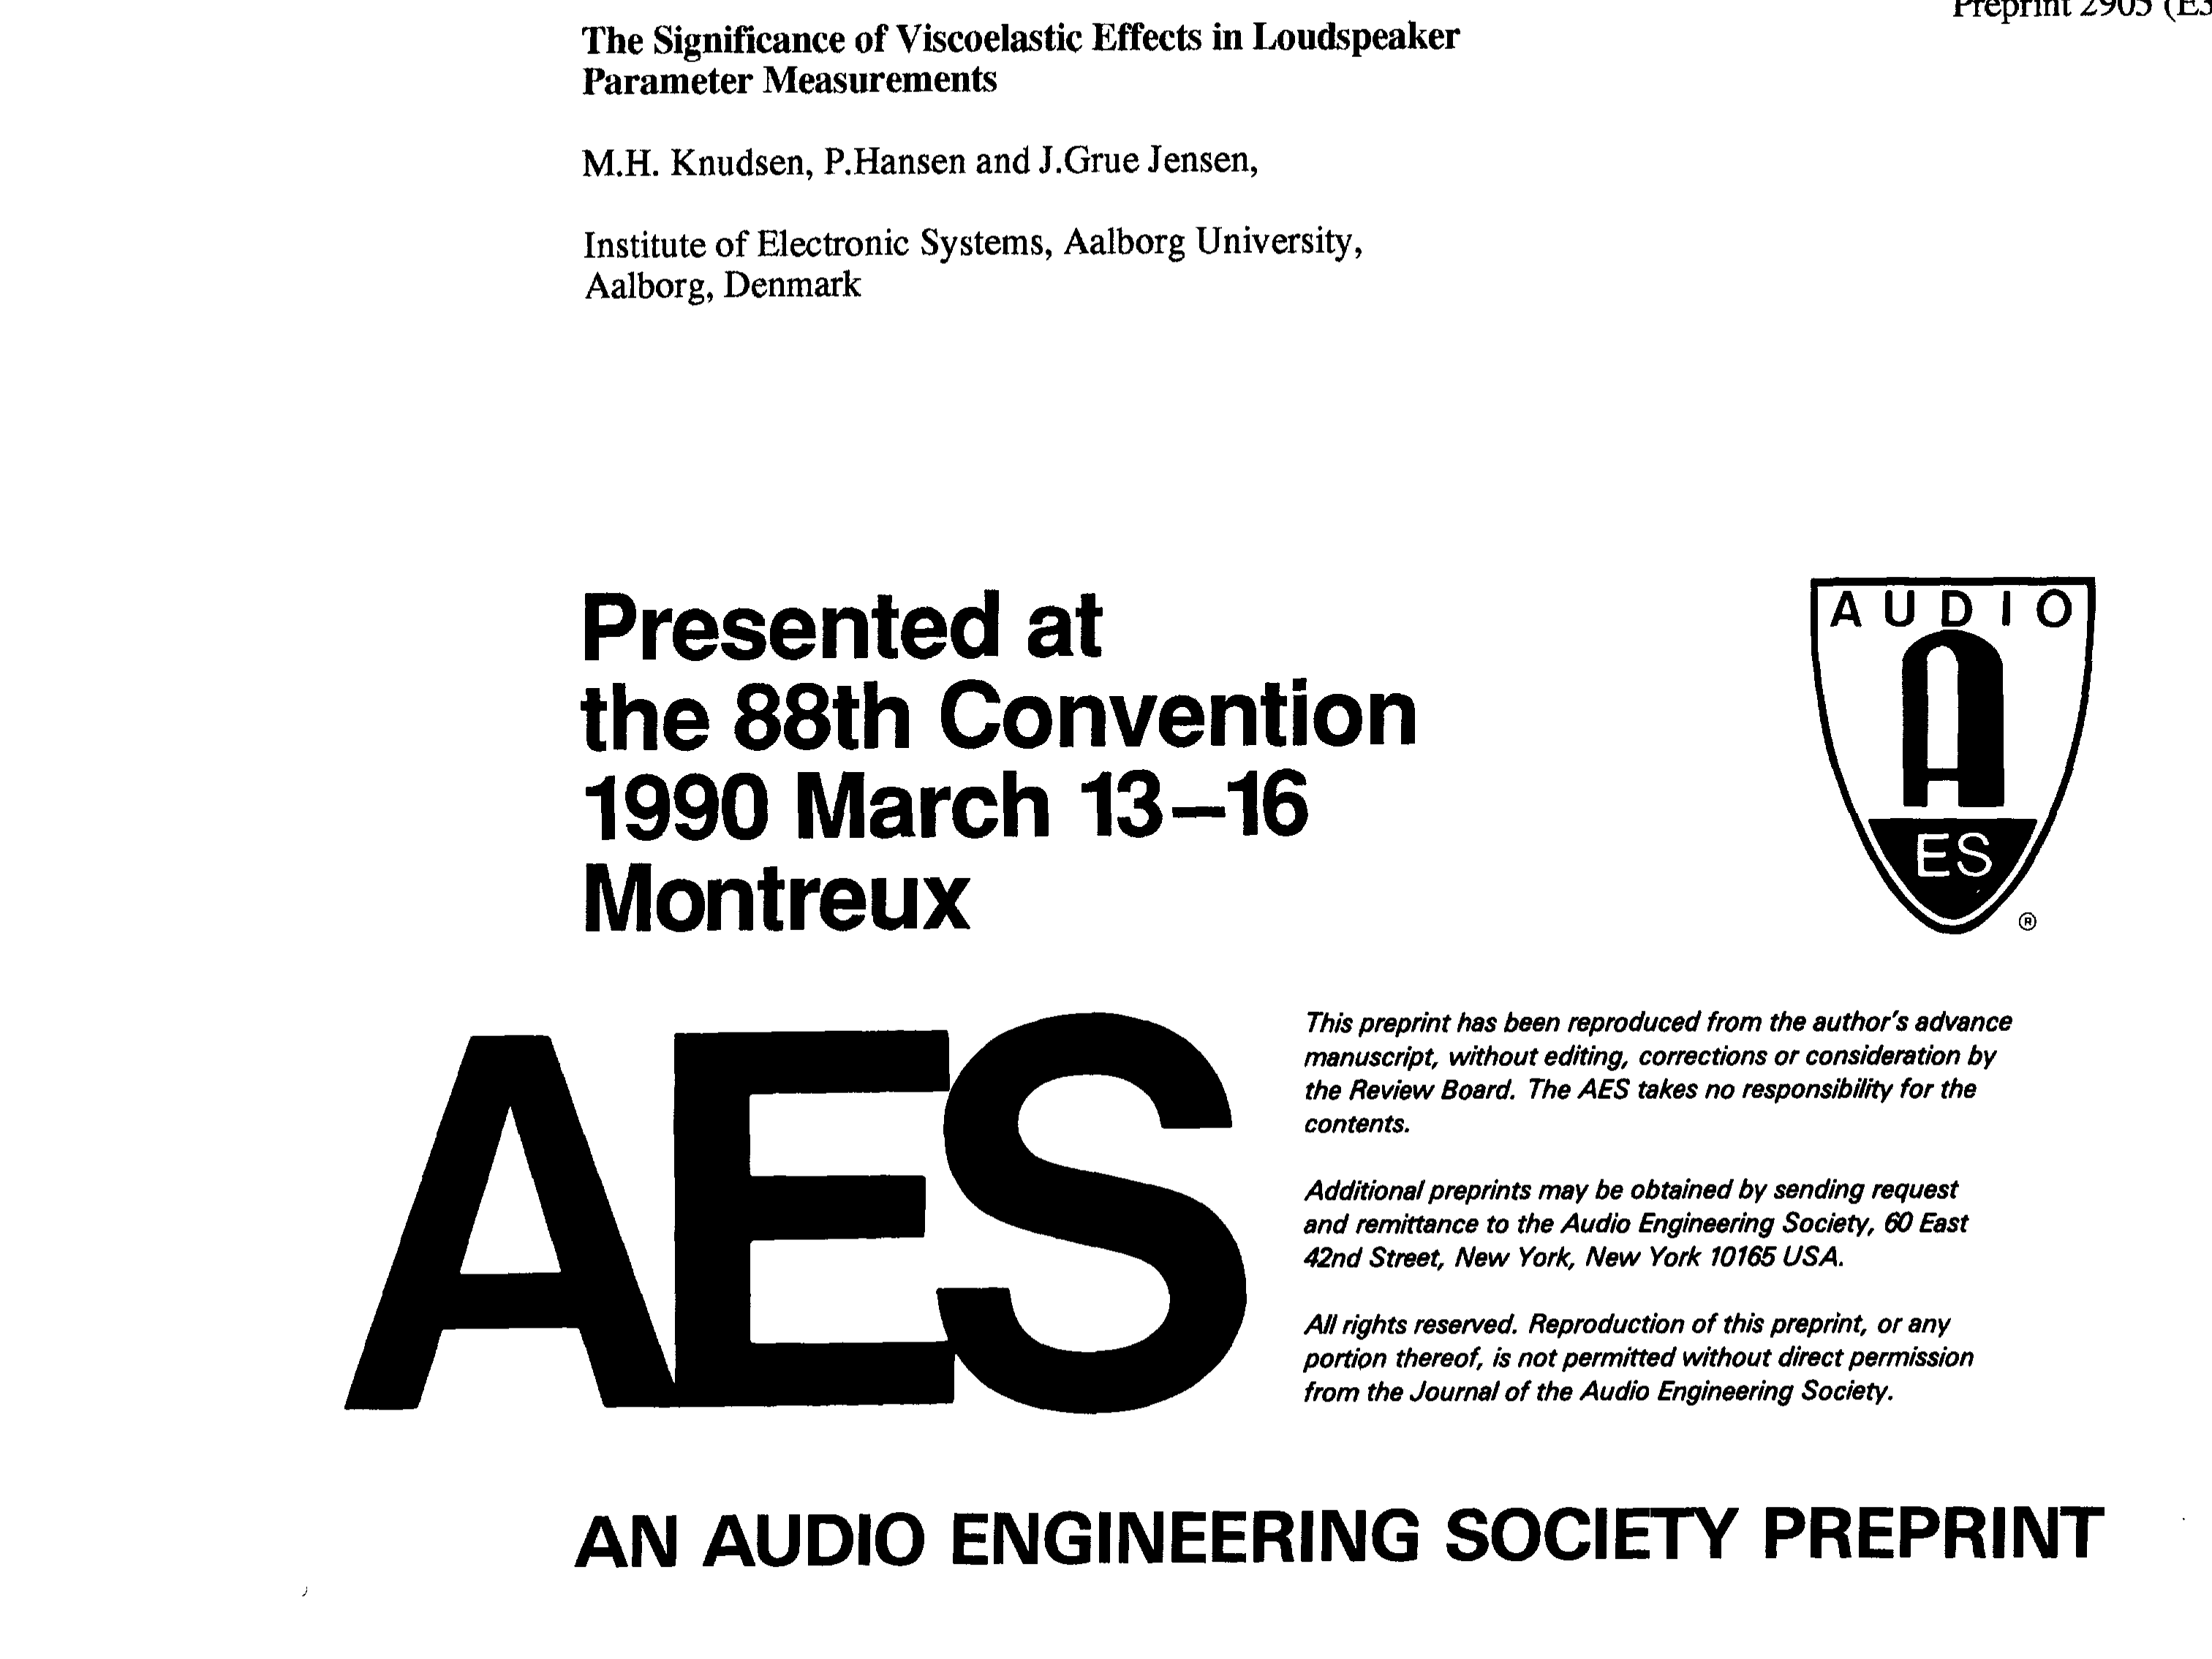 AES E-Library » The Significance of Viscoelastic Effects in